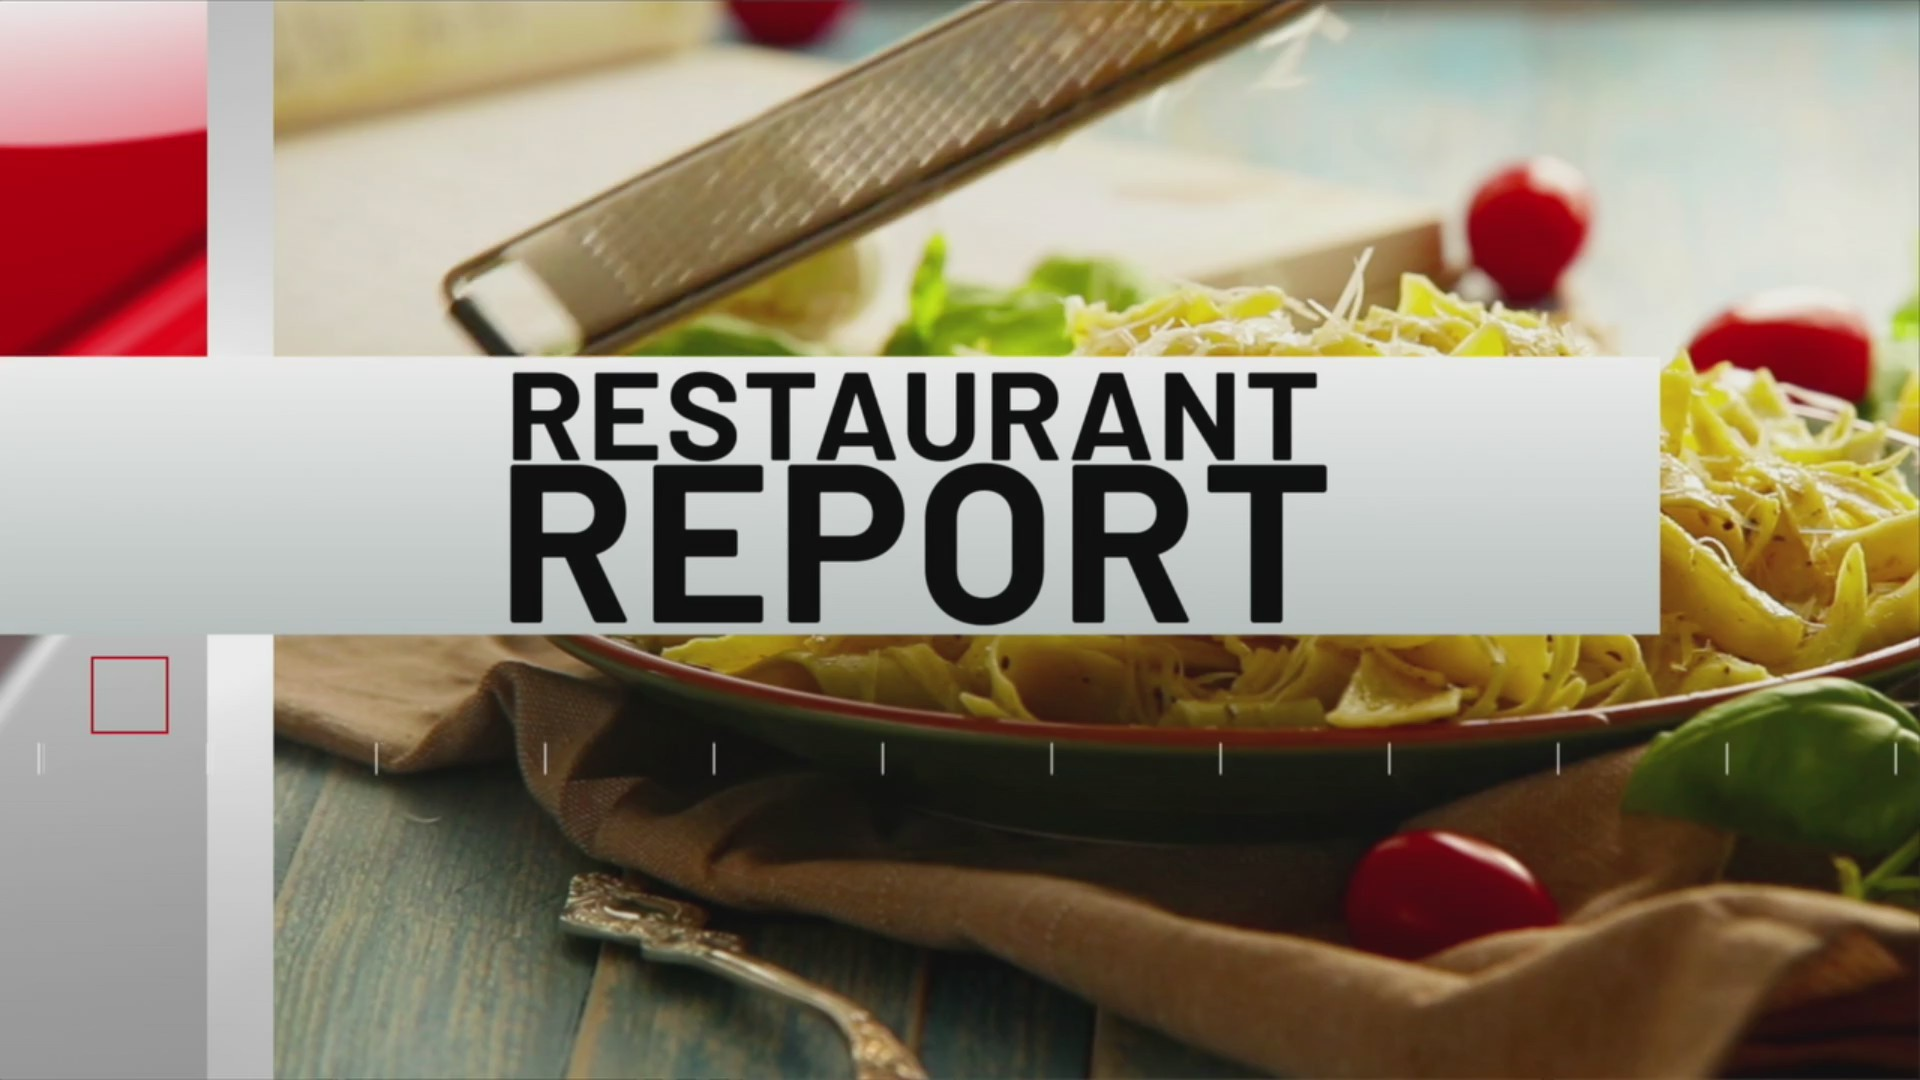 Restaurant Report: Insects, uncovered food, raw pork